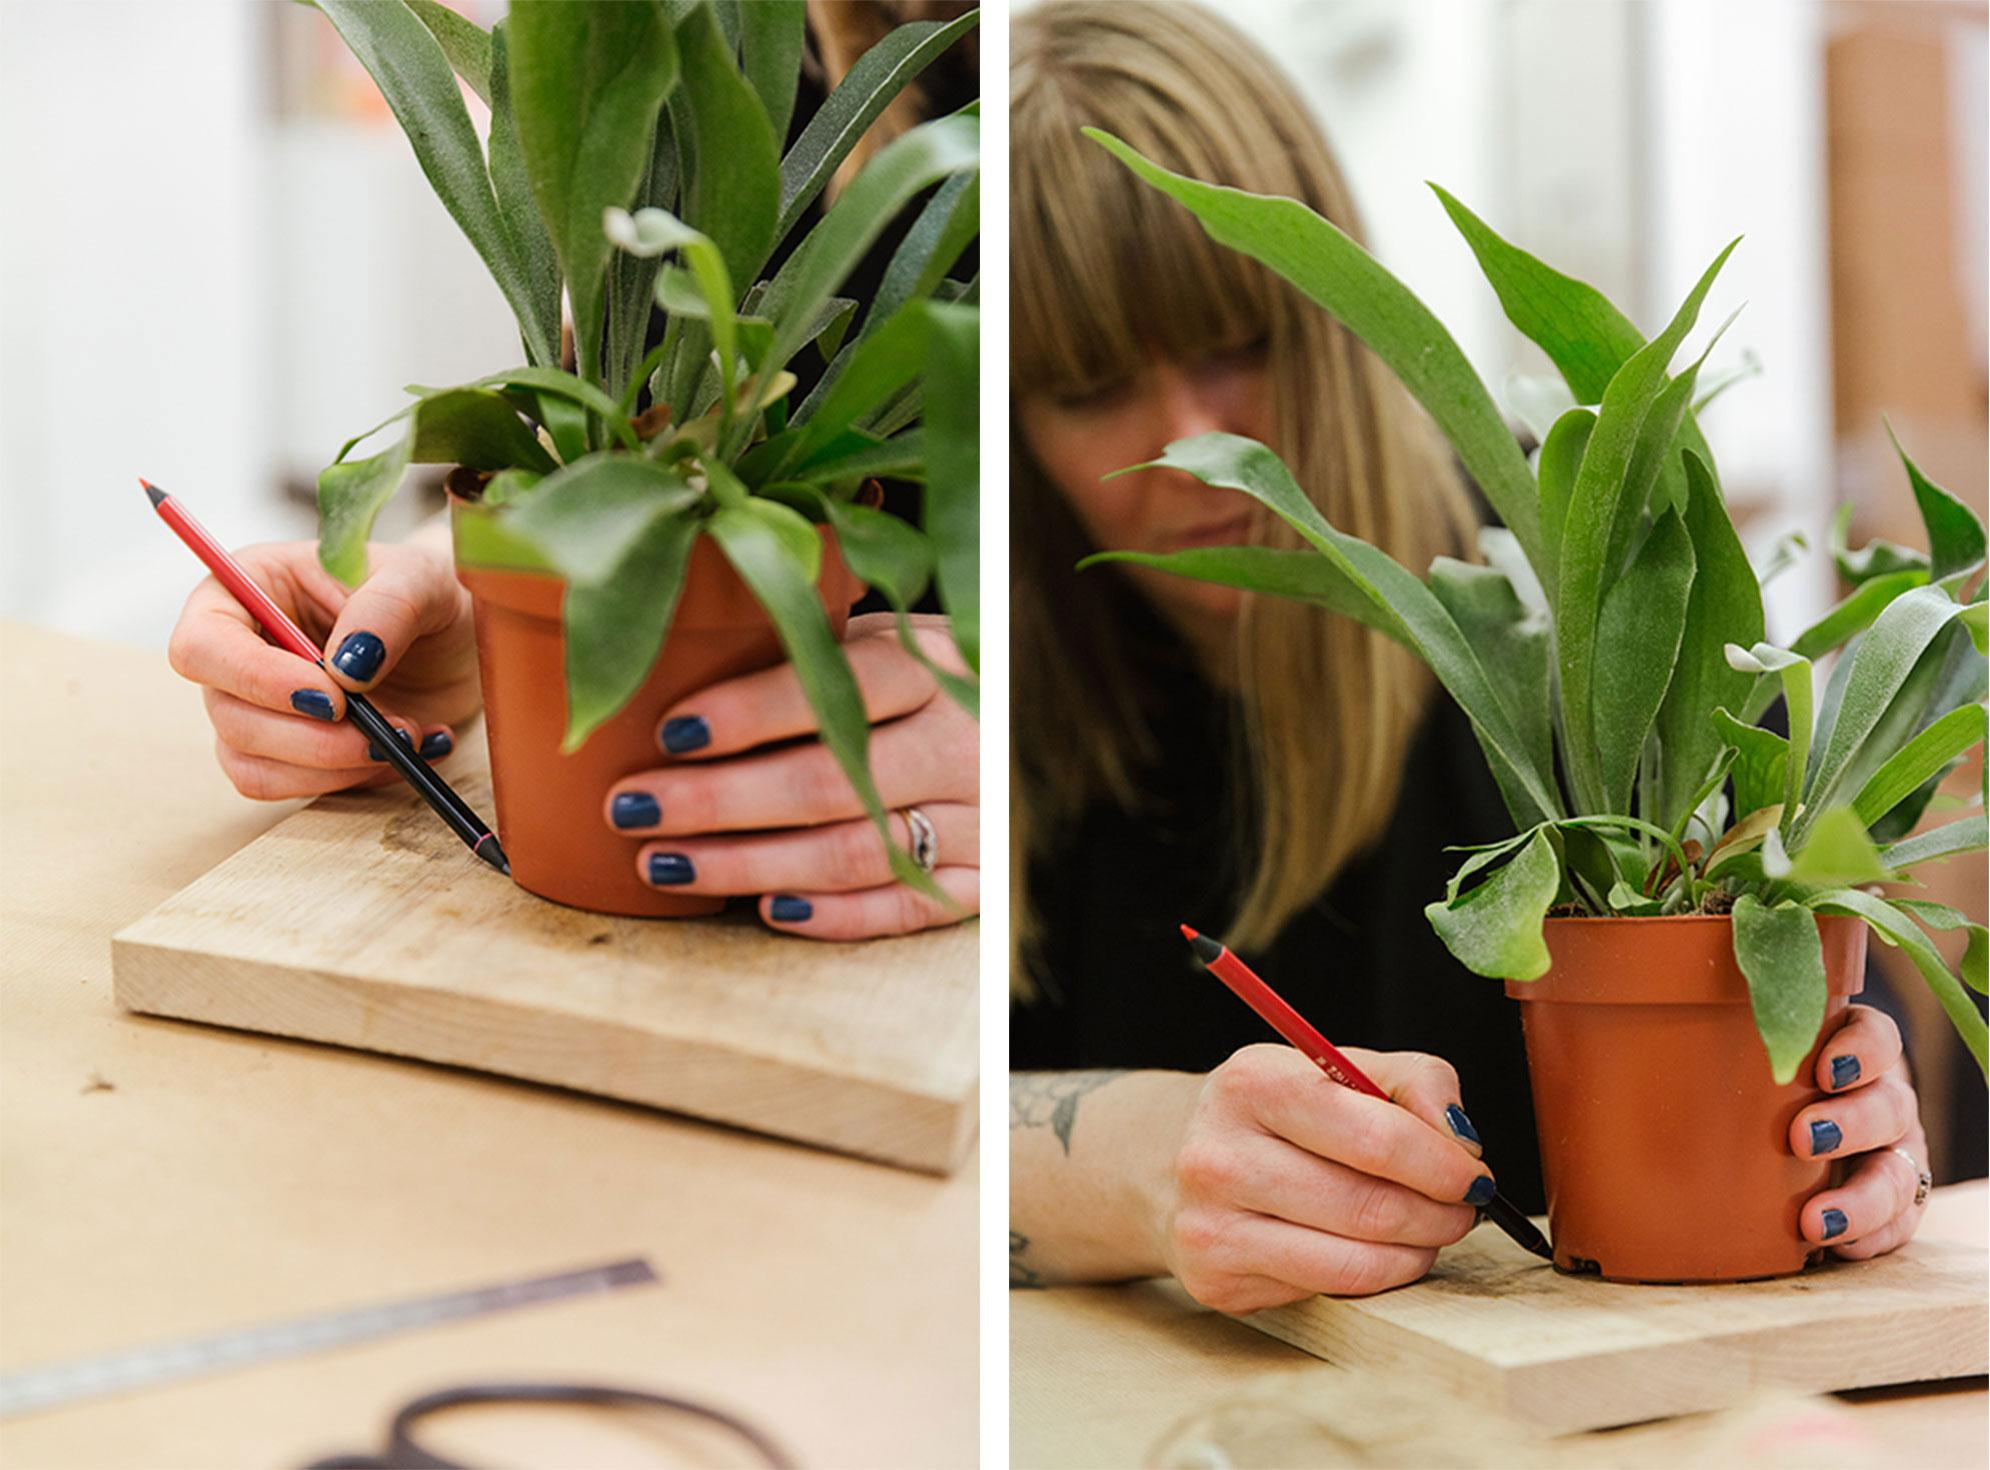 Tracing the outline of the plant pot on the wooden board with a pencil